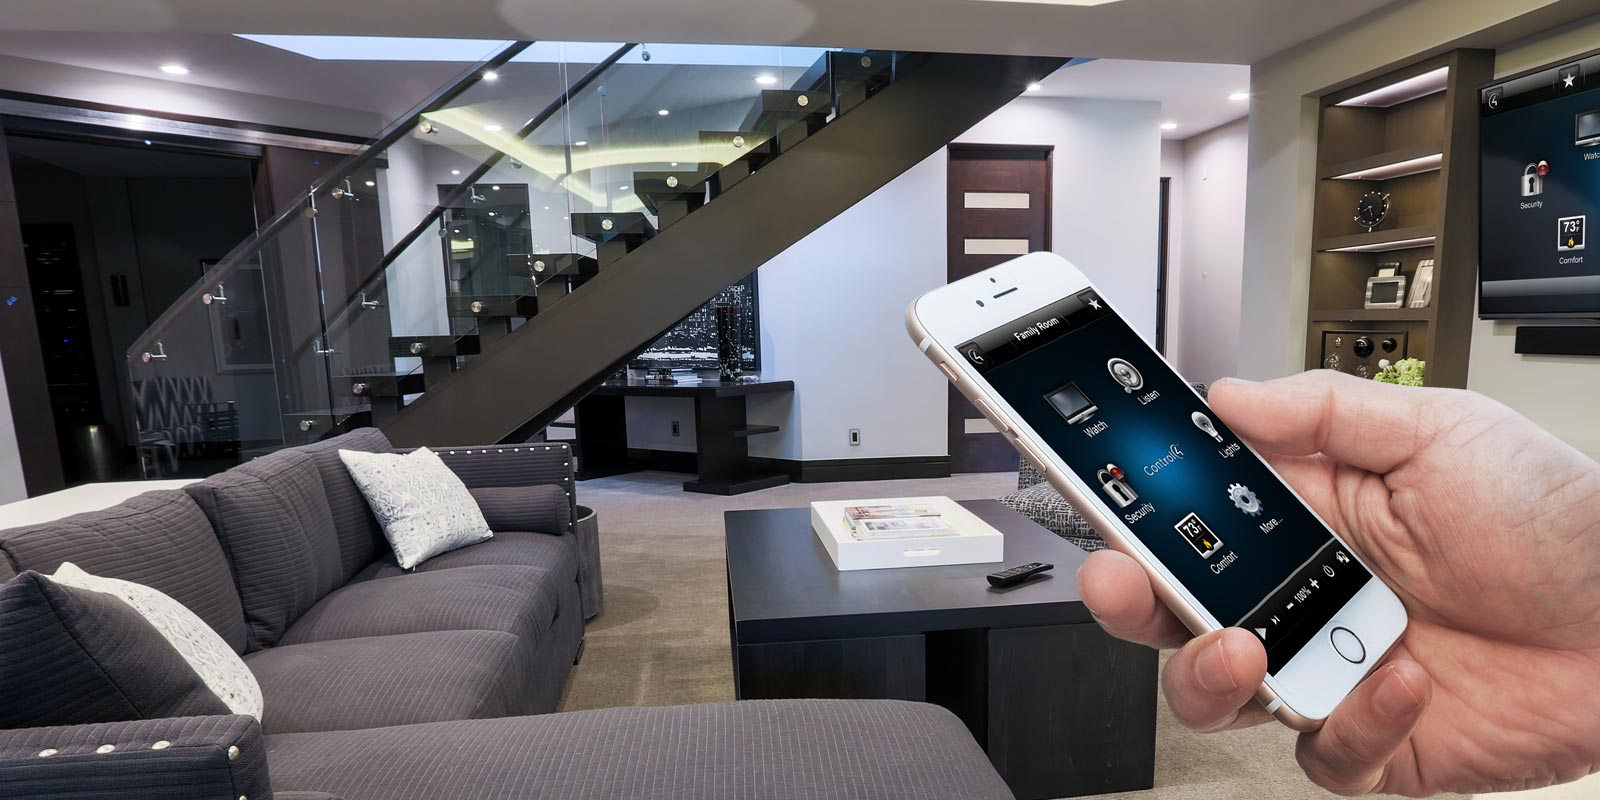 Preparing a new house for whole house smart lighting? Home